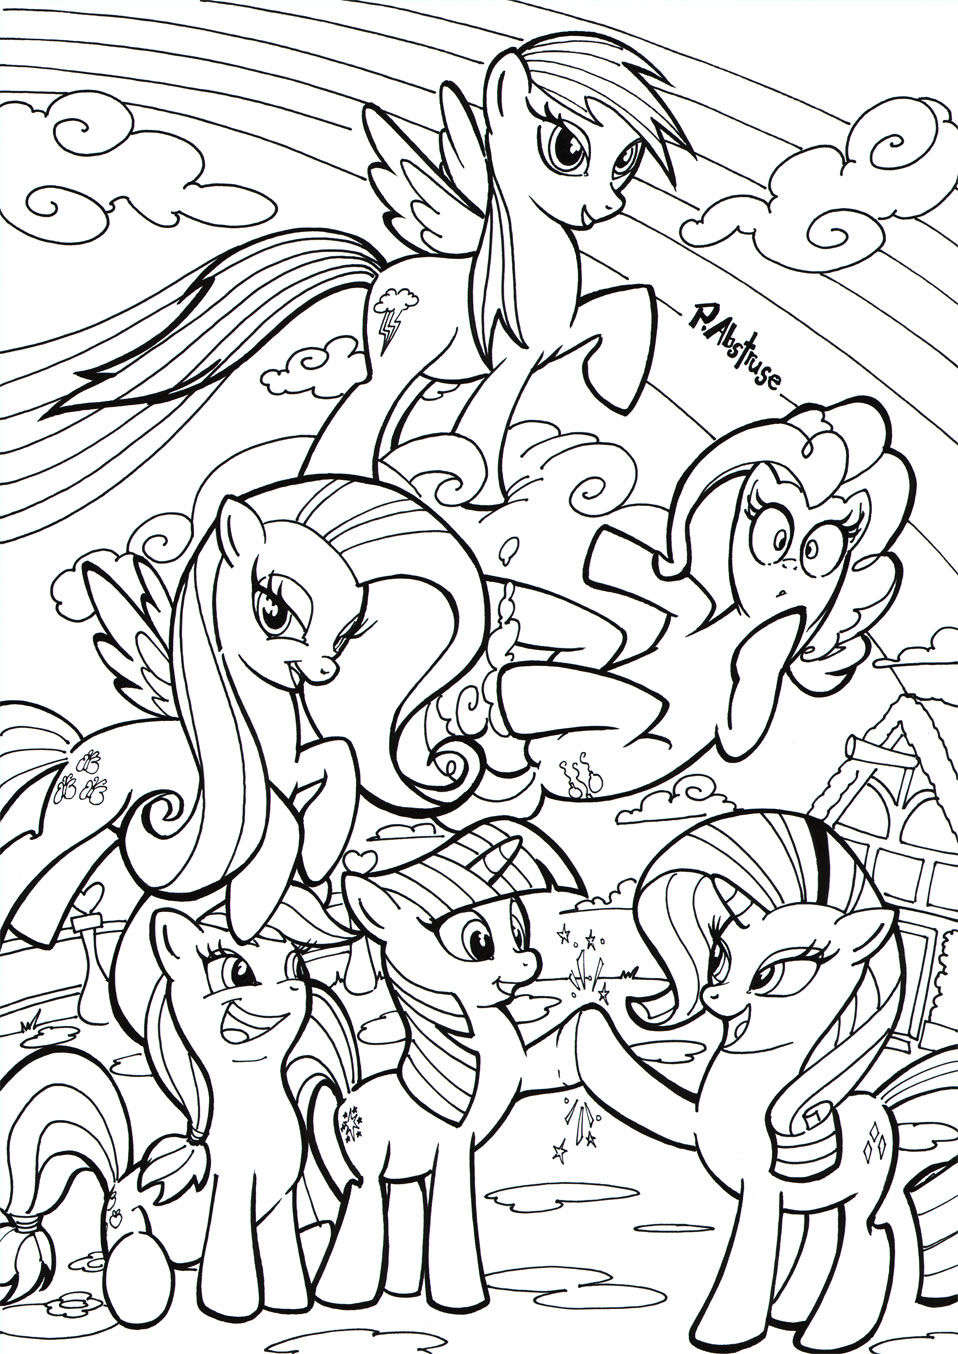 6 Images of Printable MLP Comics